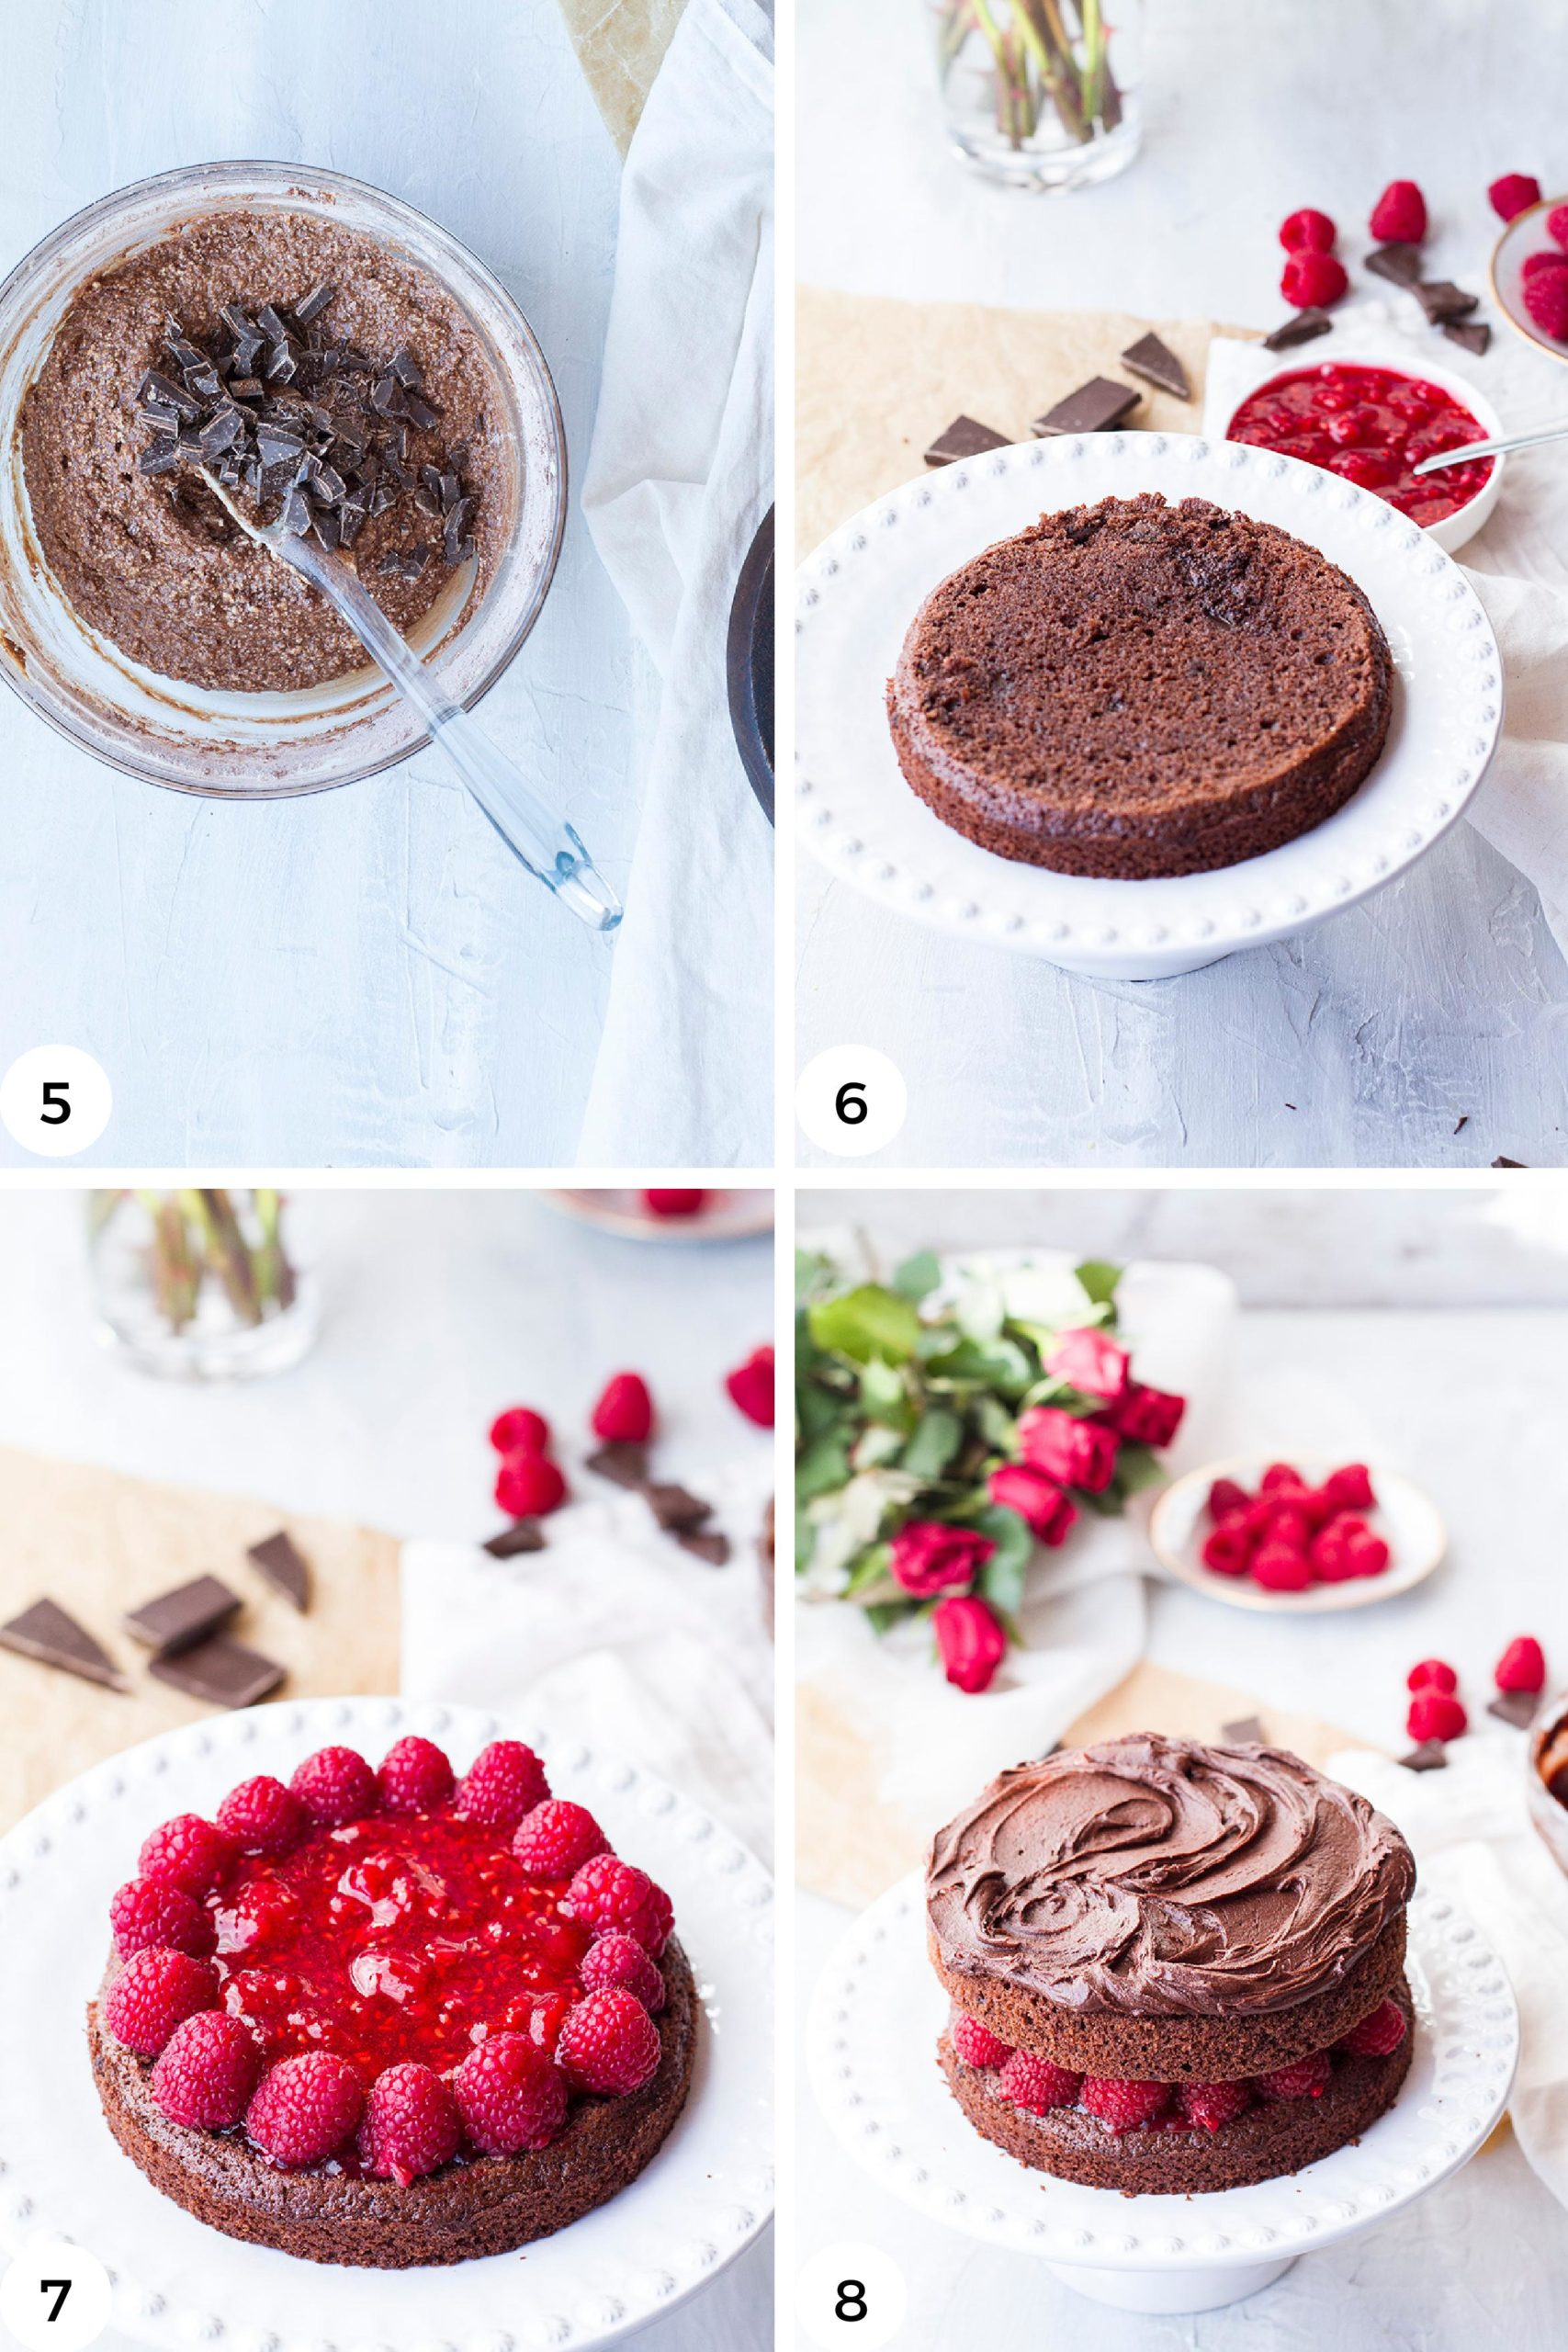 Steps to assemble the cake.